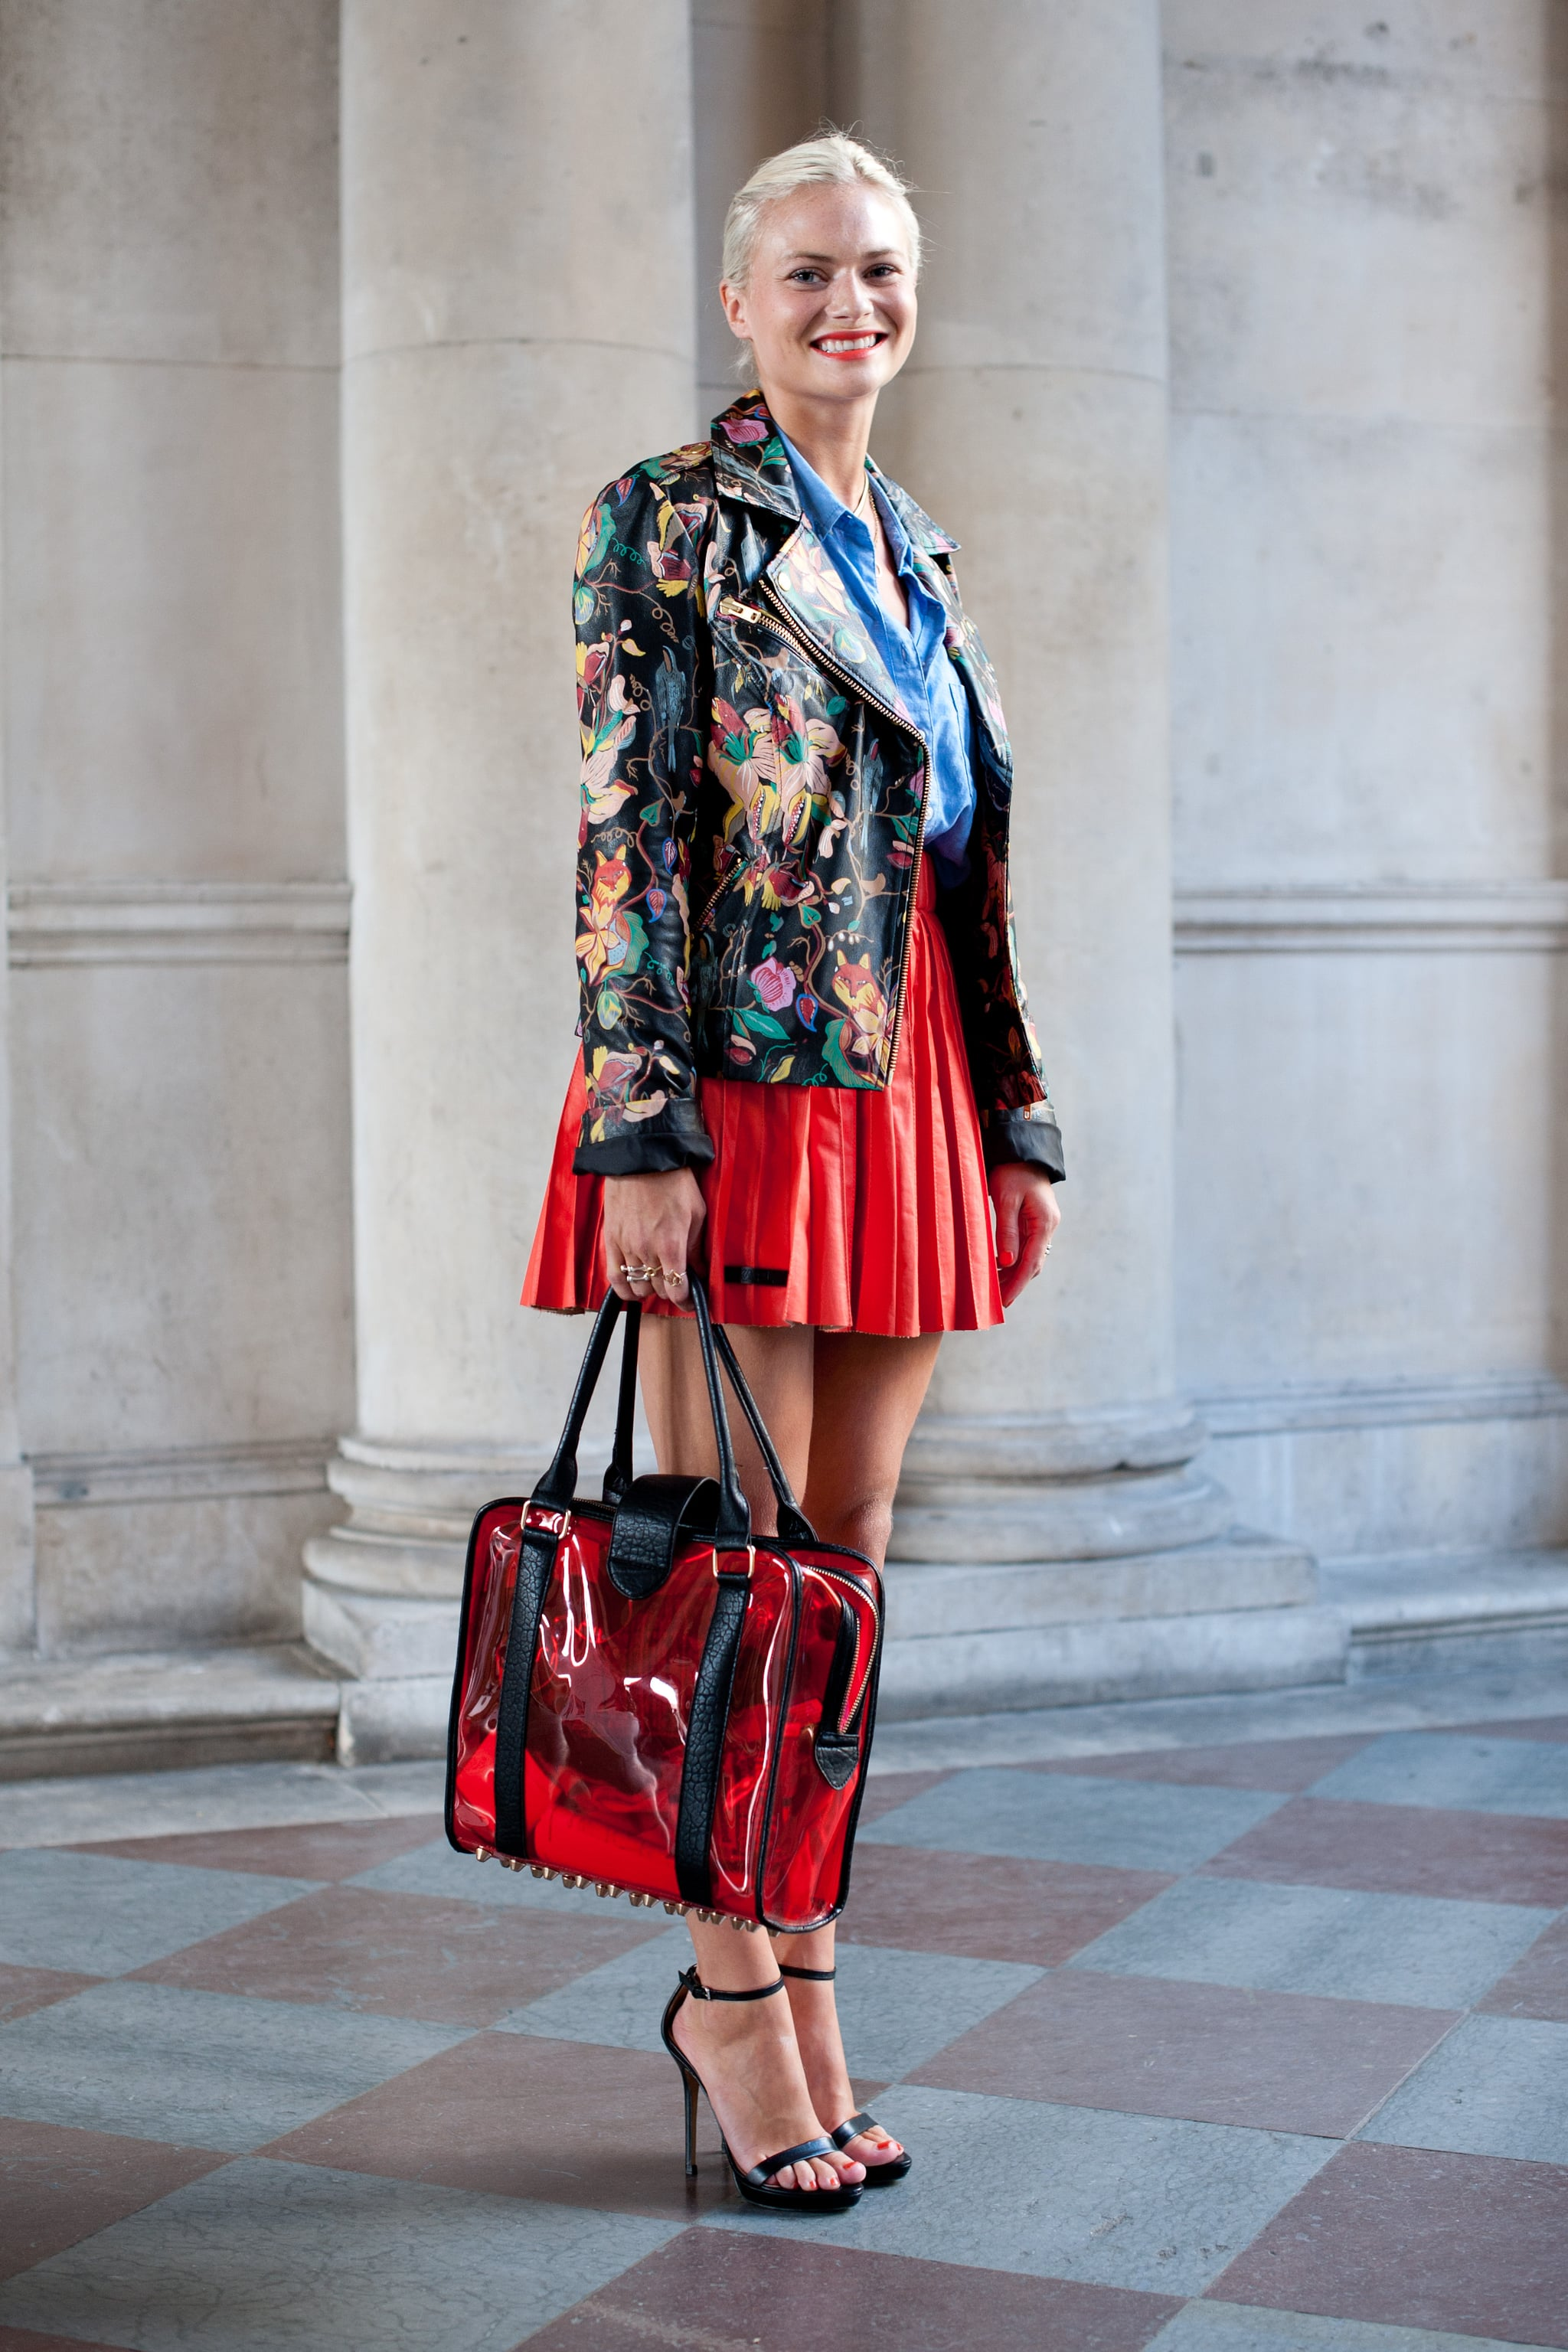 Red statement pieces go a long way, as proven by Daily Mail deputy editor Pandora Sykes. Her siren-hued pleated skirt and PVC-infused bag made quite the fiery street-style impression.